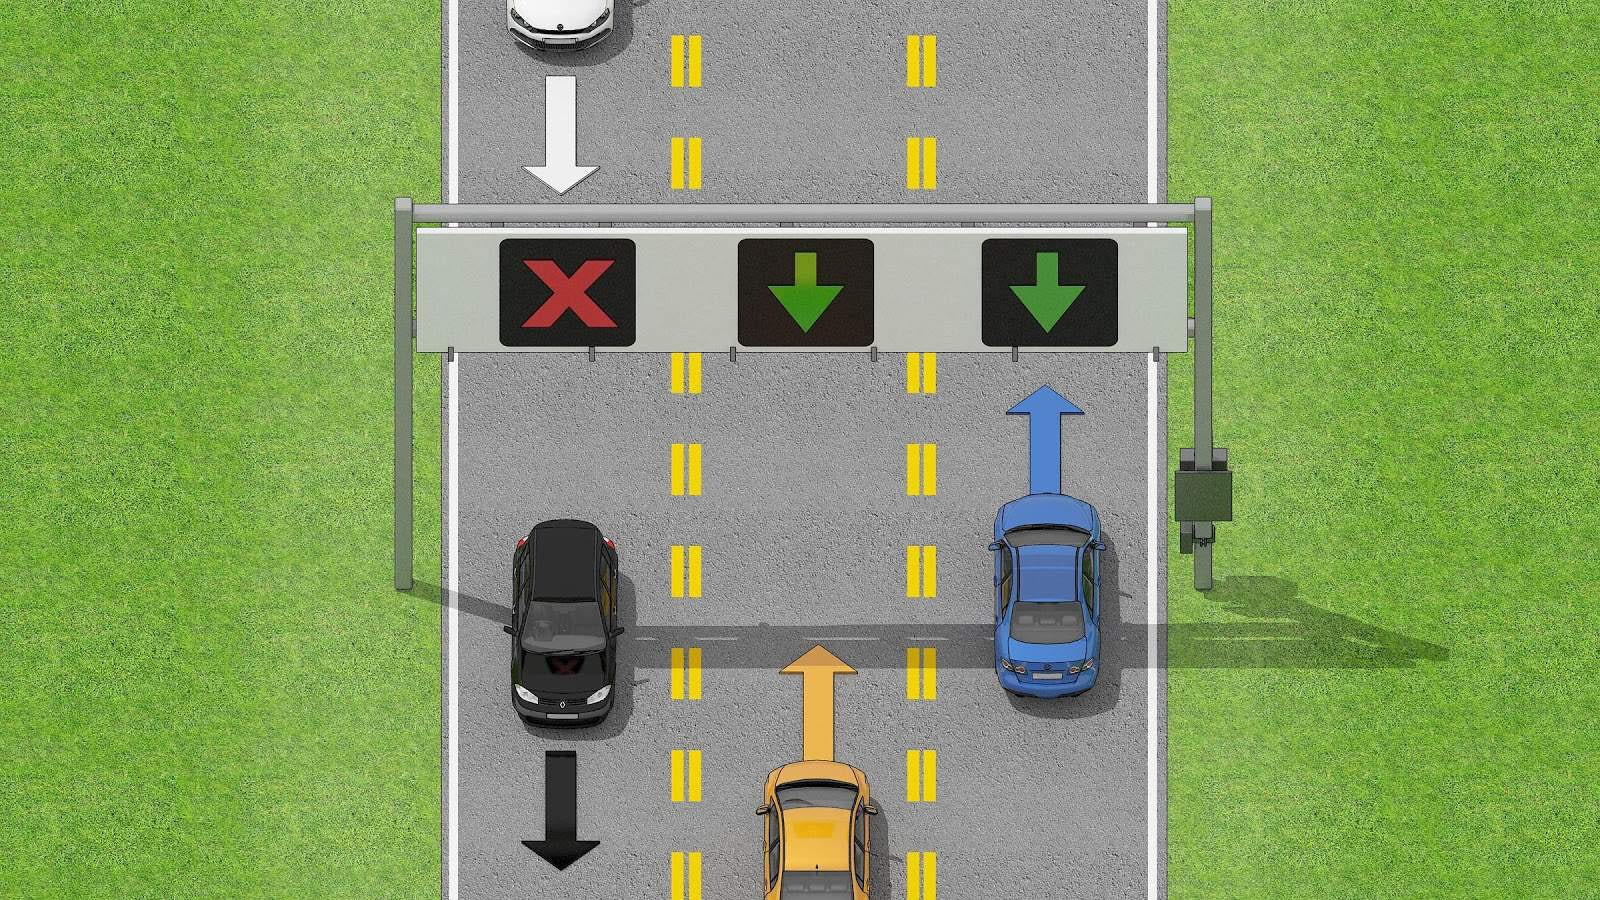 Cars driving on road where lane use control signals are used